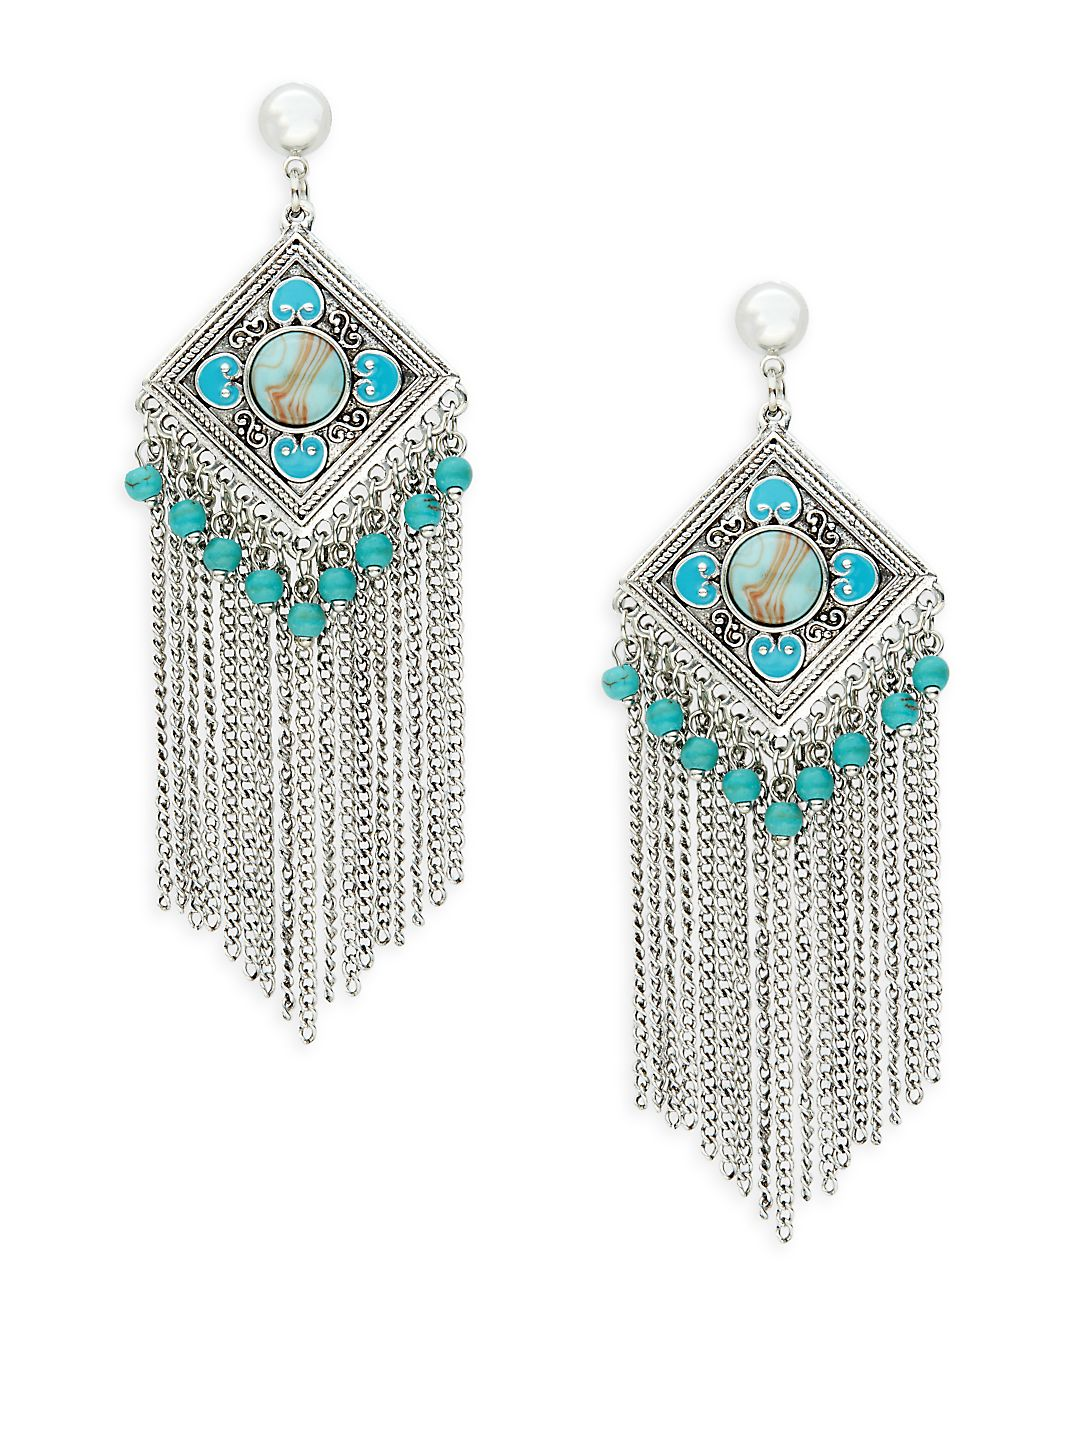 Silvertone Fringe Drop Earrings